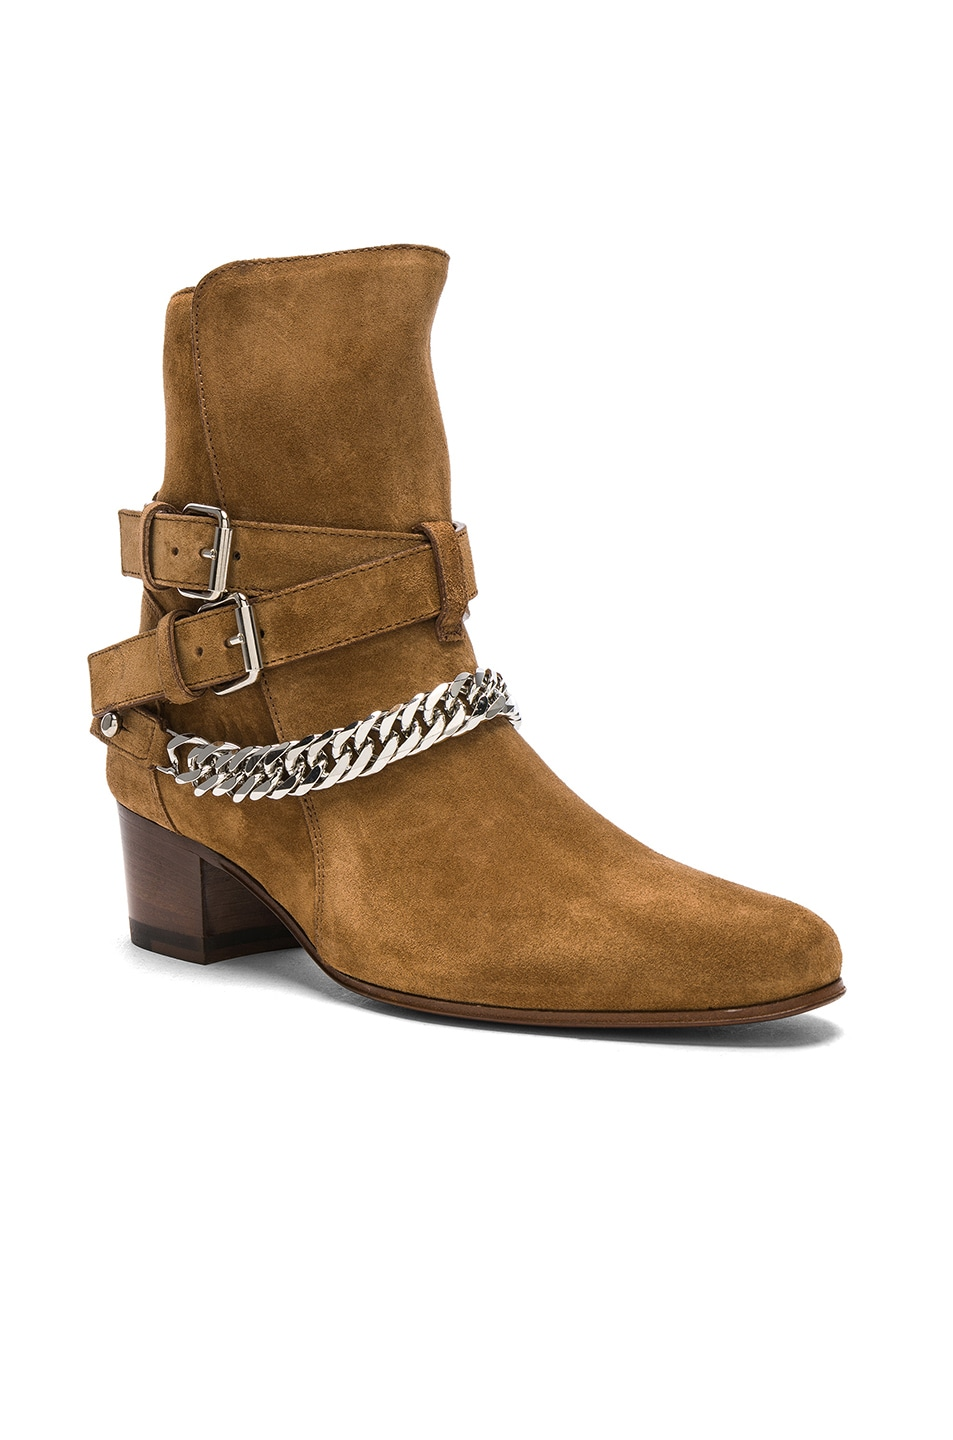 49b3aa32676 Image 2 of Amiri Chain Buckle Suede Boots in Brown